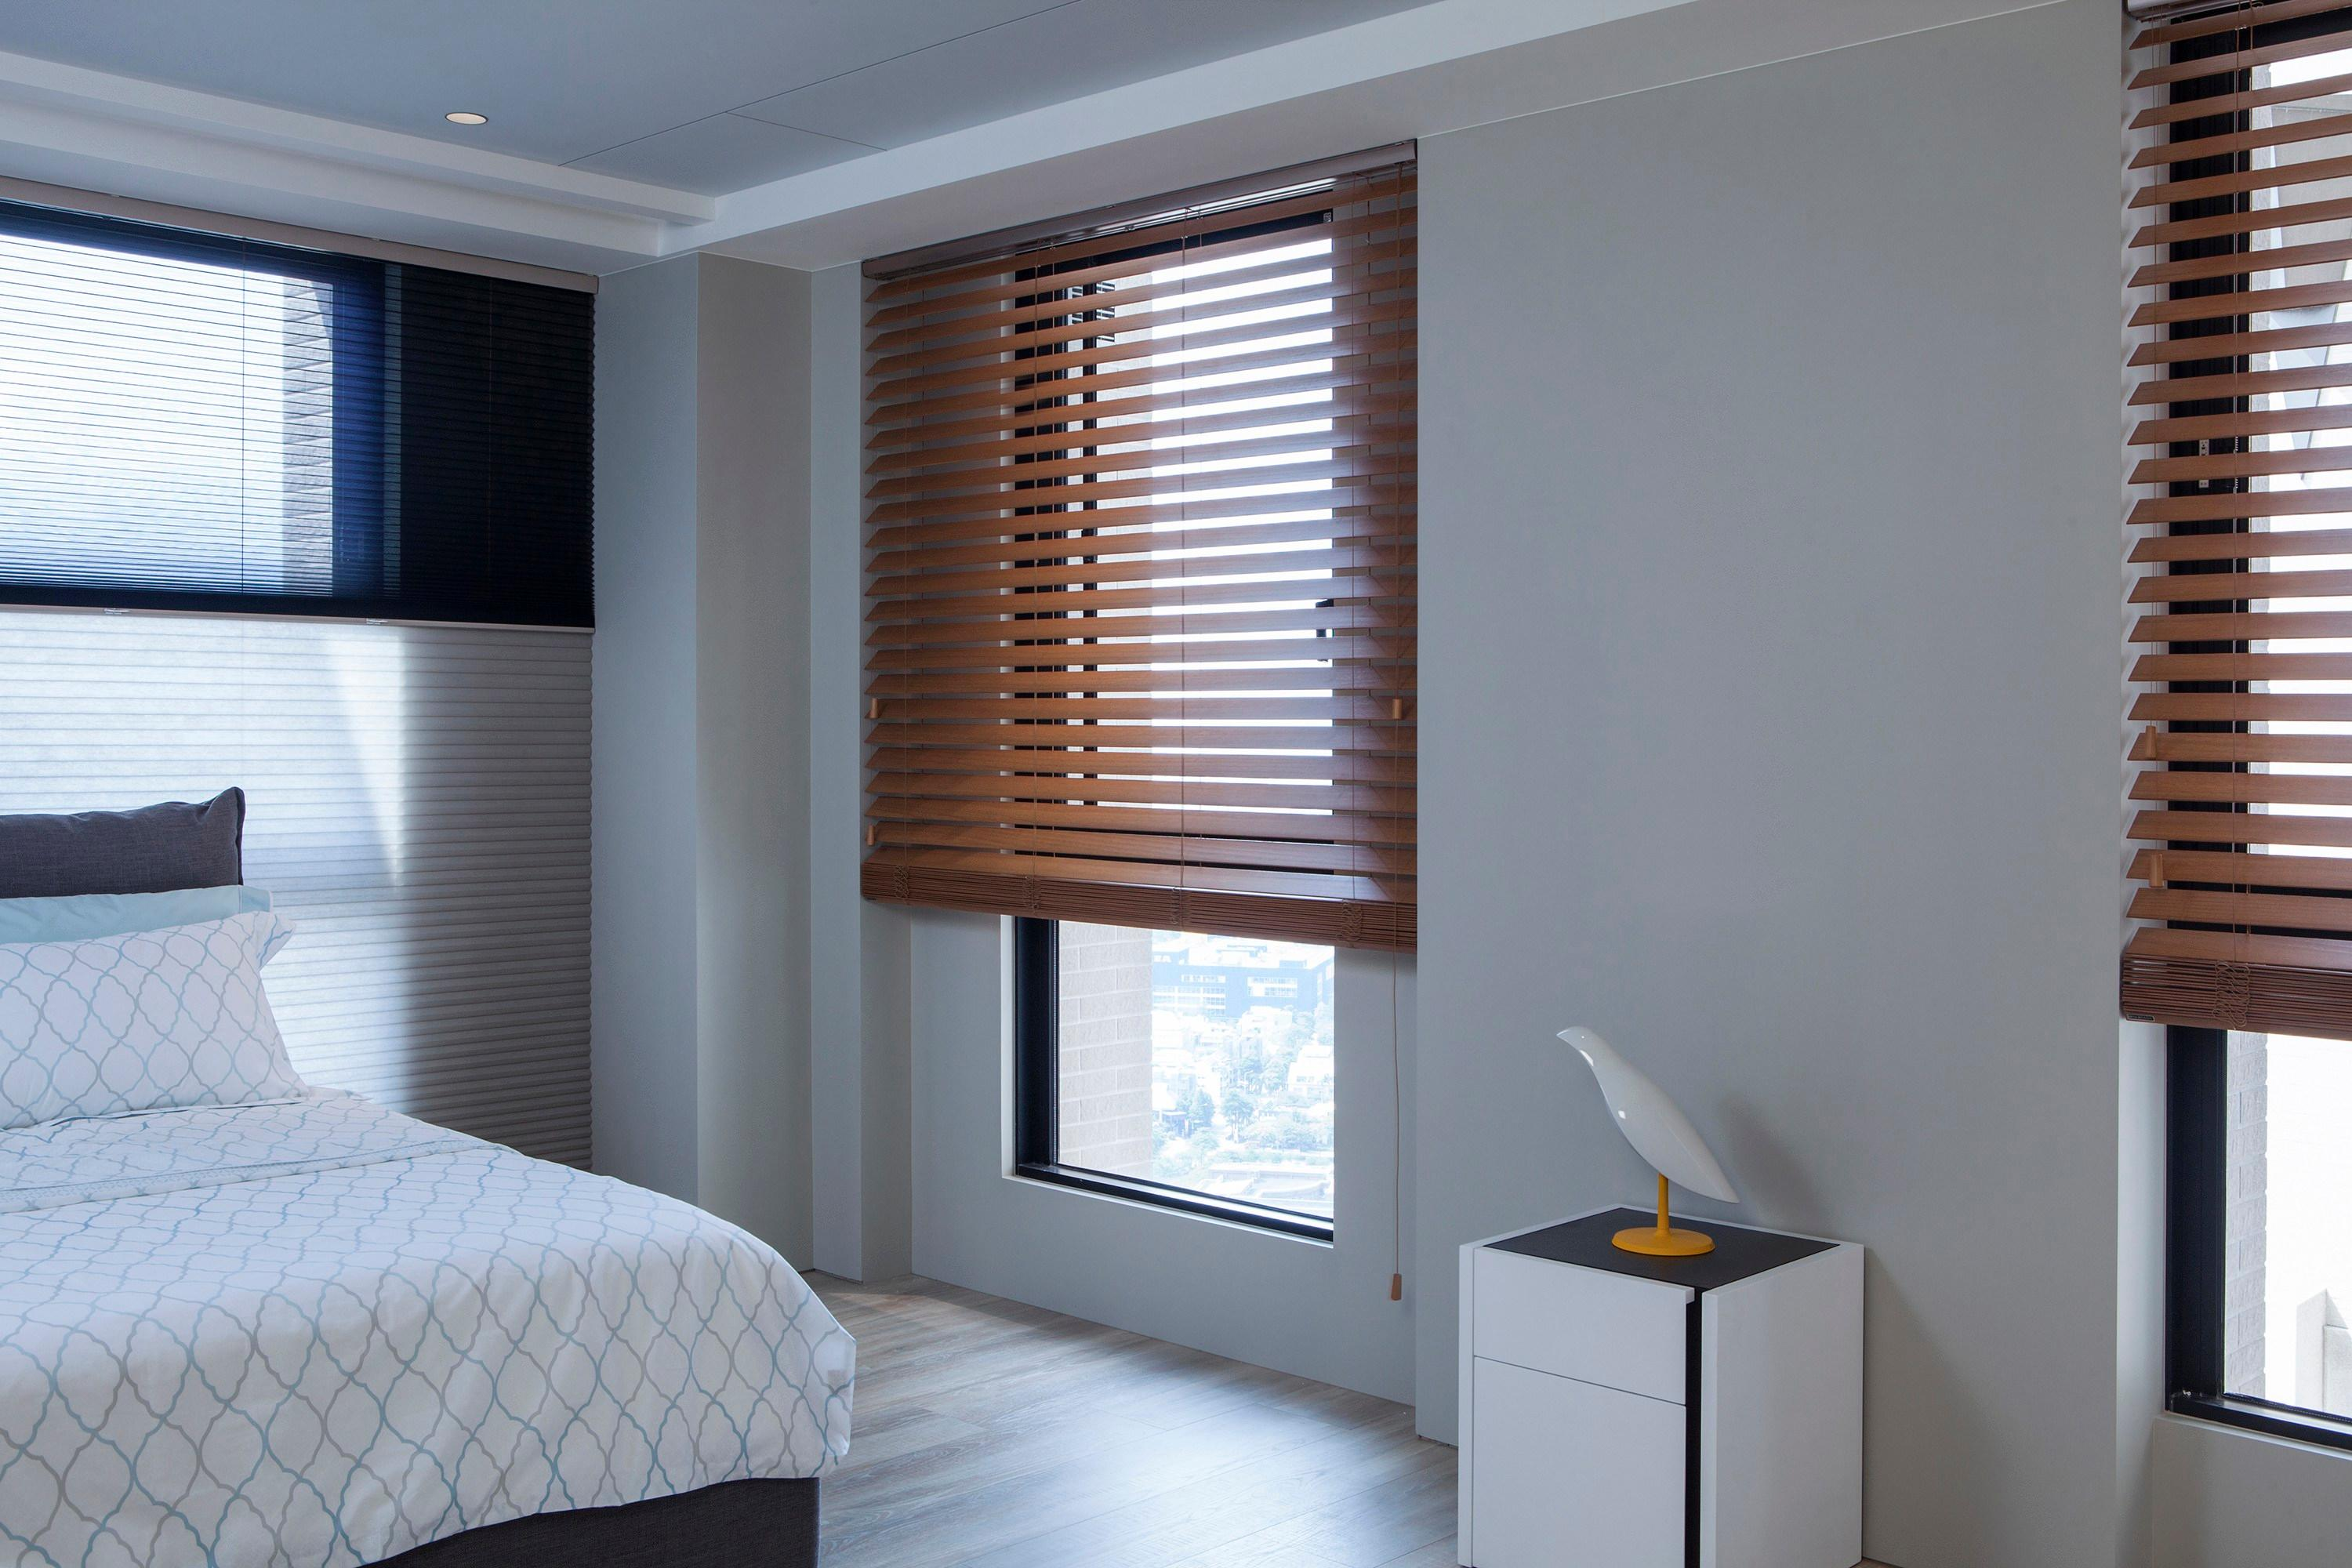 Affordable Blinds And Shutters In Memphis Tn 38133